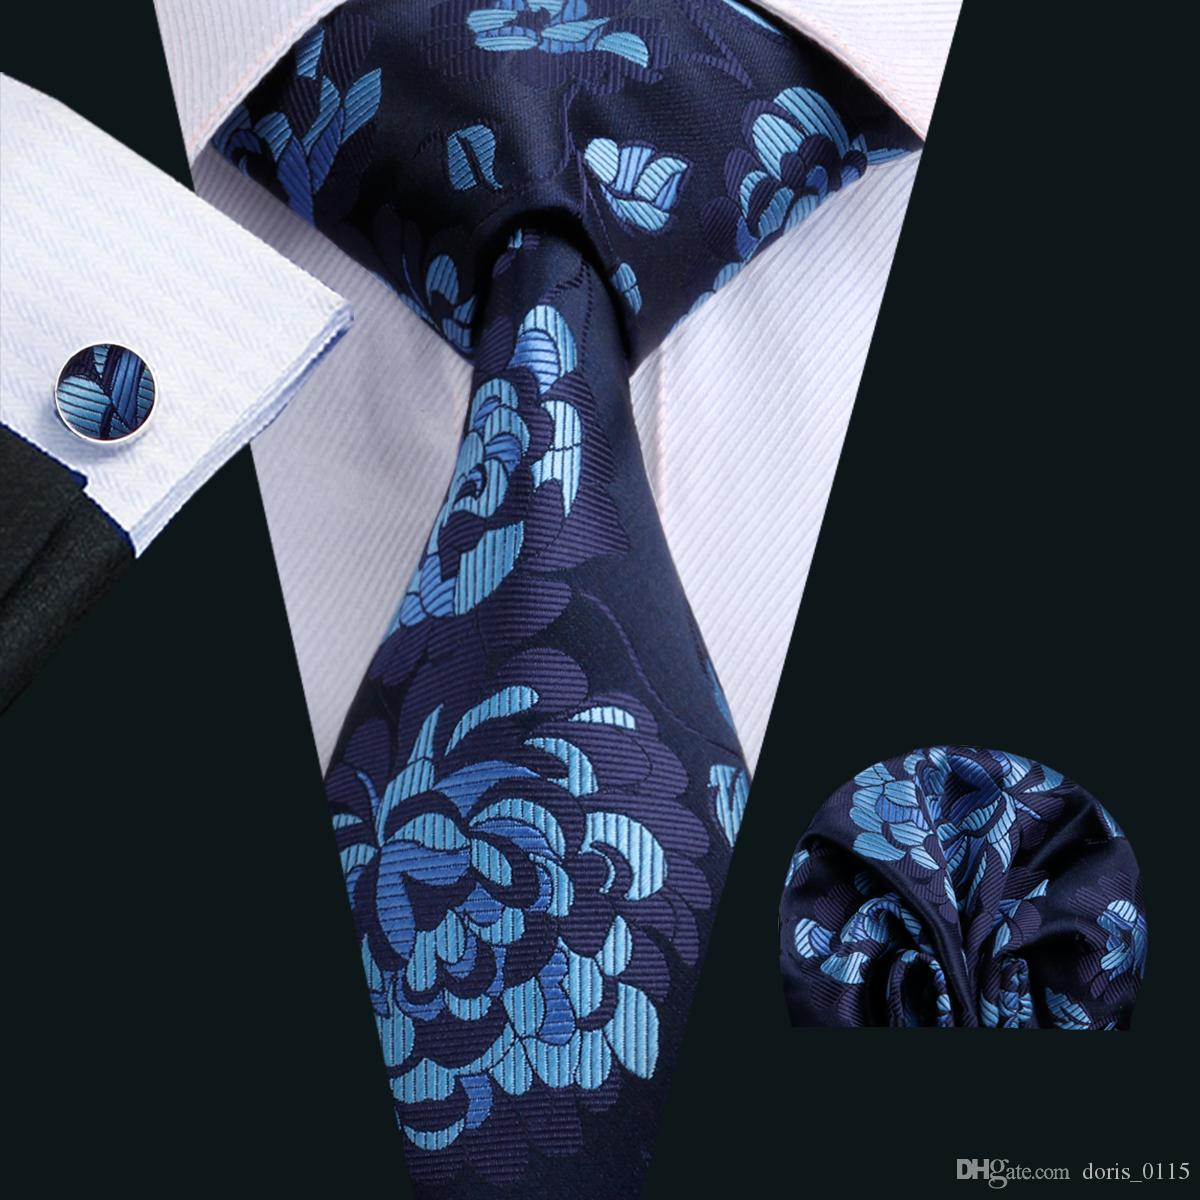 11a875dbbe9d 2019 Floral Mens Ties Classic Silk Tie Sets Blue Mens Neck Ties Tie  Hankerchief Cufflinks Jacquard Woven Meeting Business Wedding Party N 1566  From ...